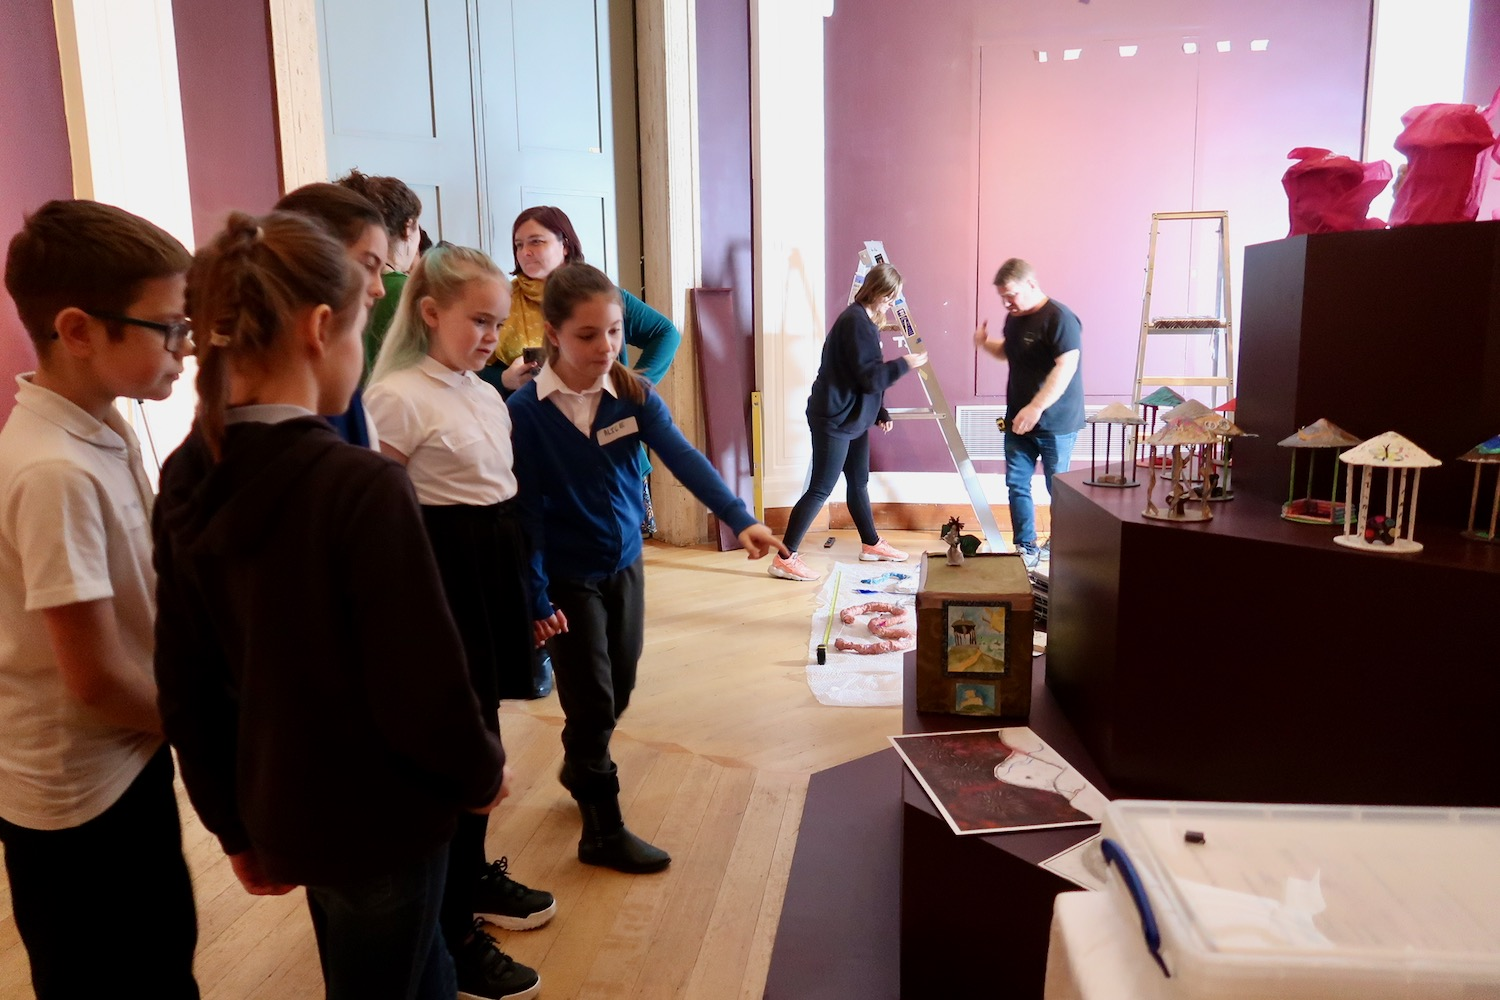 In the Octagon Gallery pupils are greeted by the installation team Charis Millett and Jamie who are installing their work